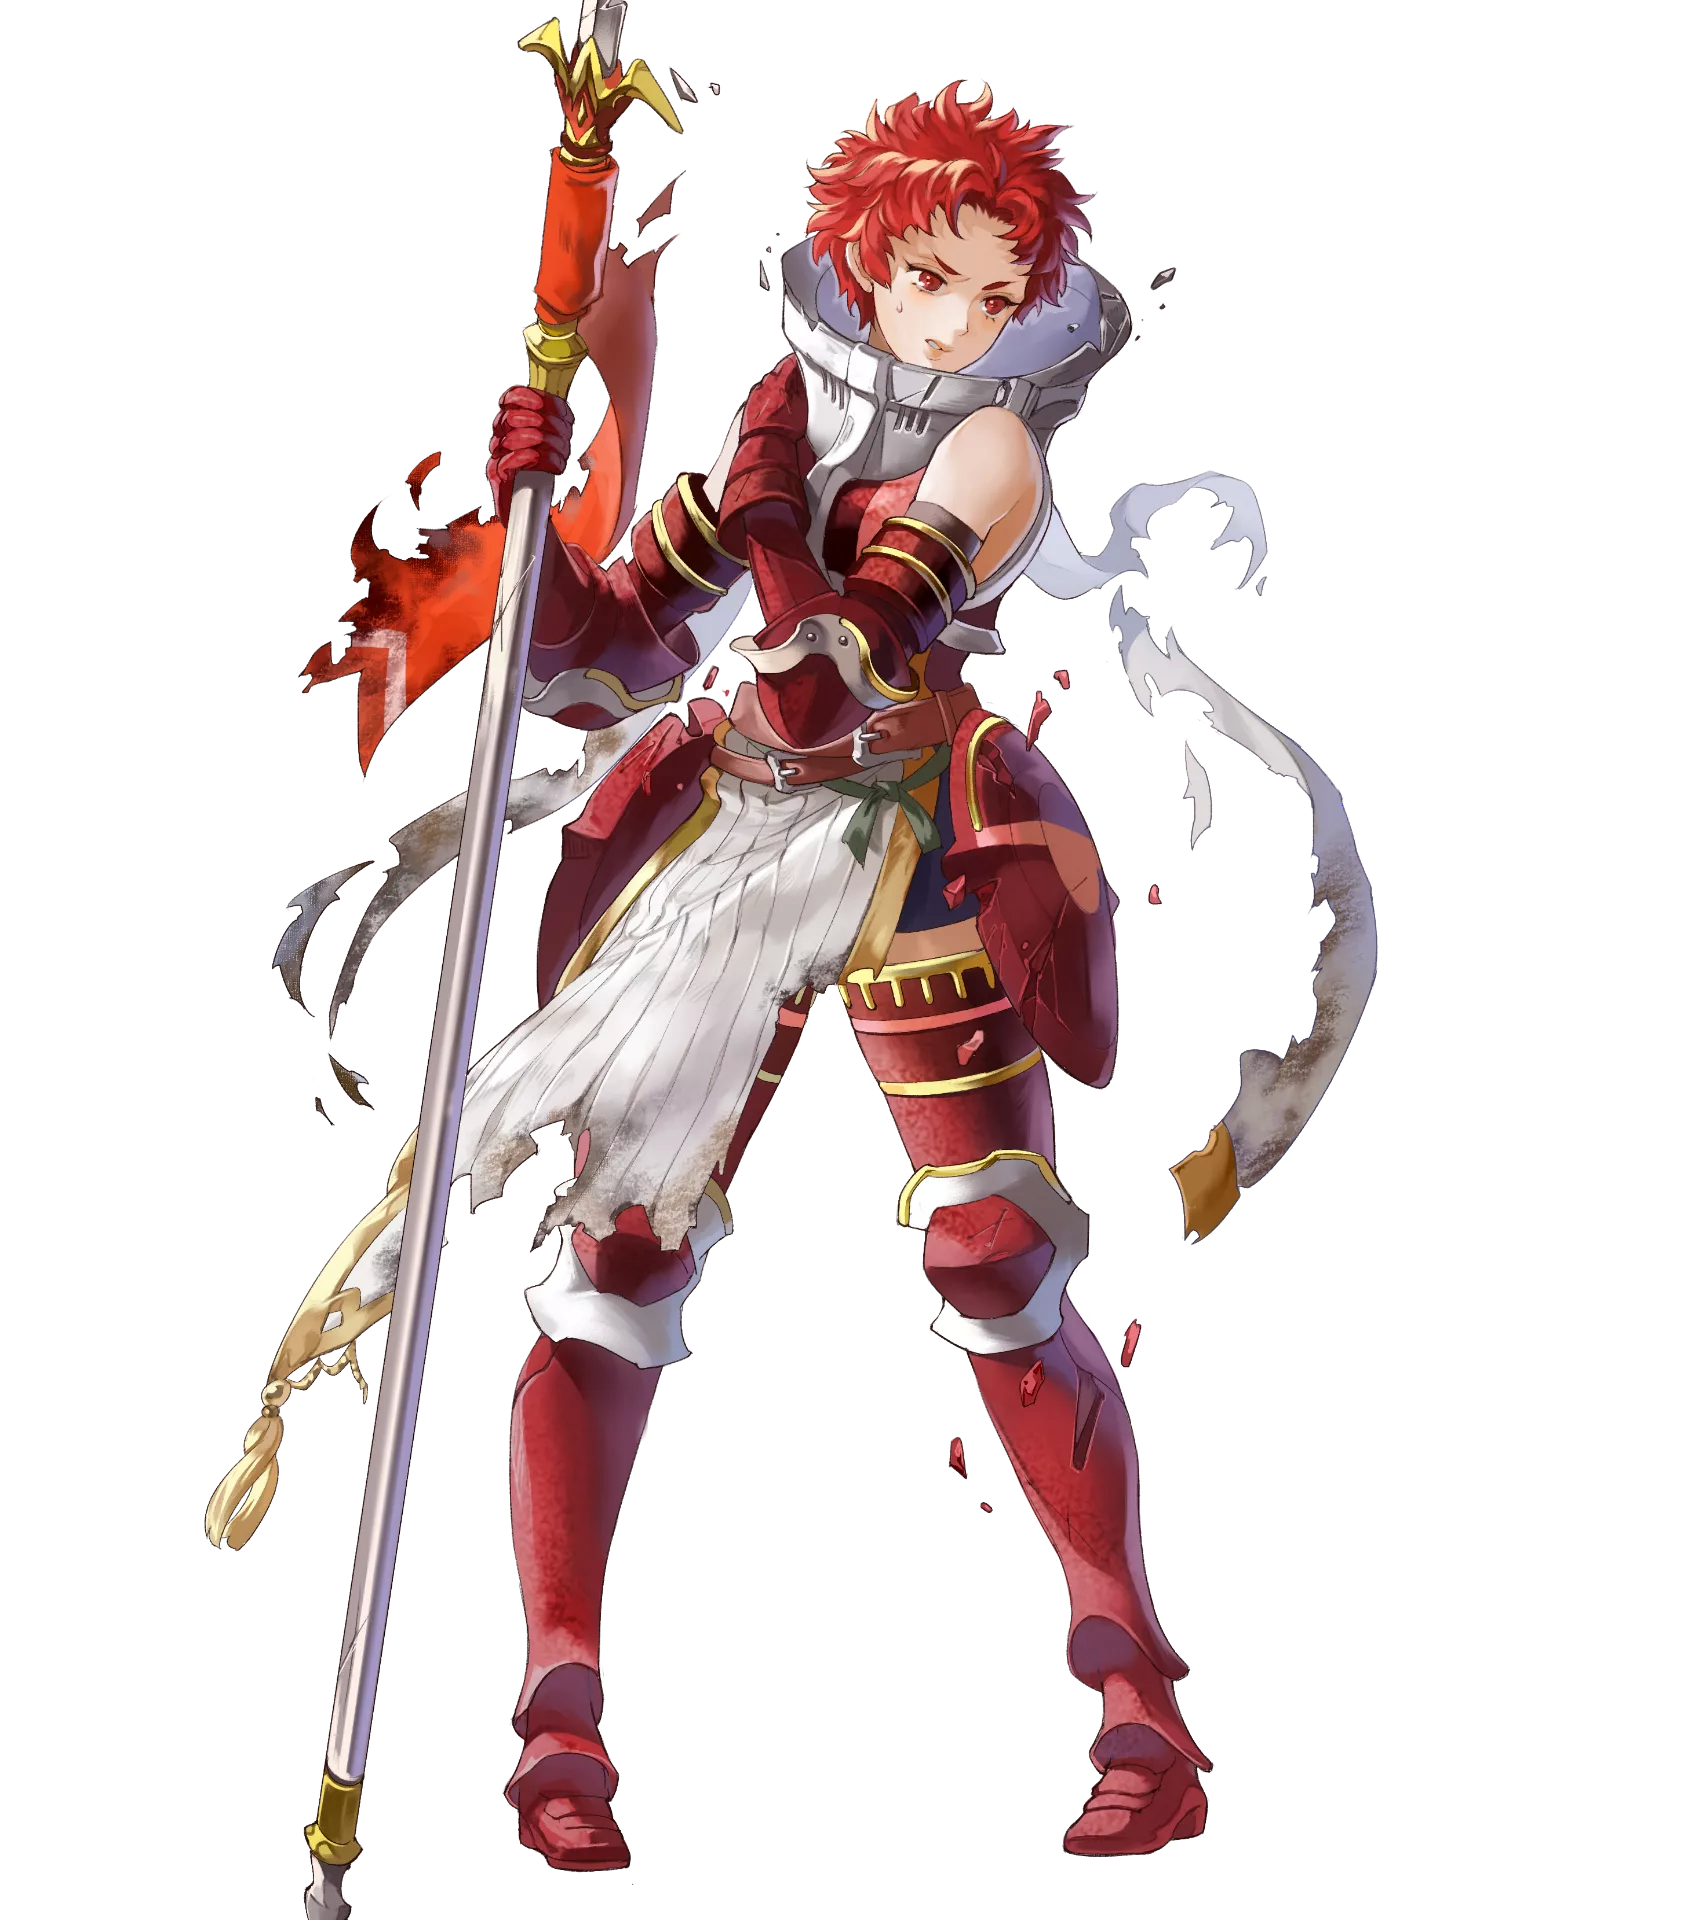 Full Injured Sully Png Png Image 1684 1920 Pixels Scaled 48 Sully Fire Emblem Fire Emblem Warriors Fire Emblem Heroes